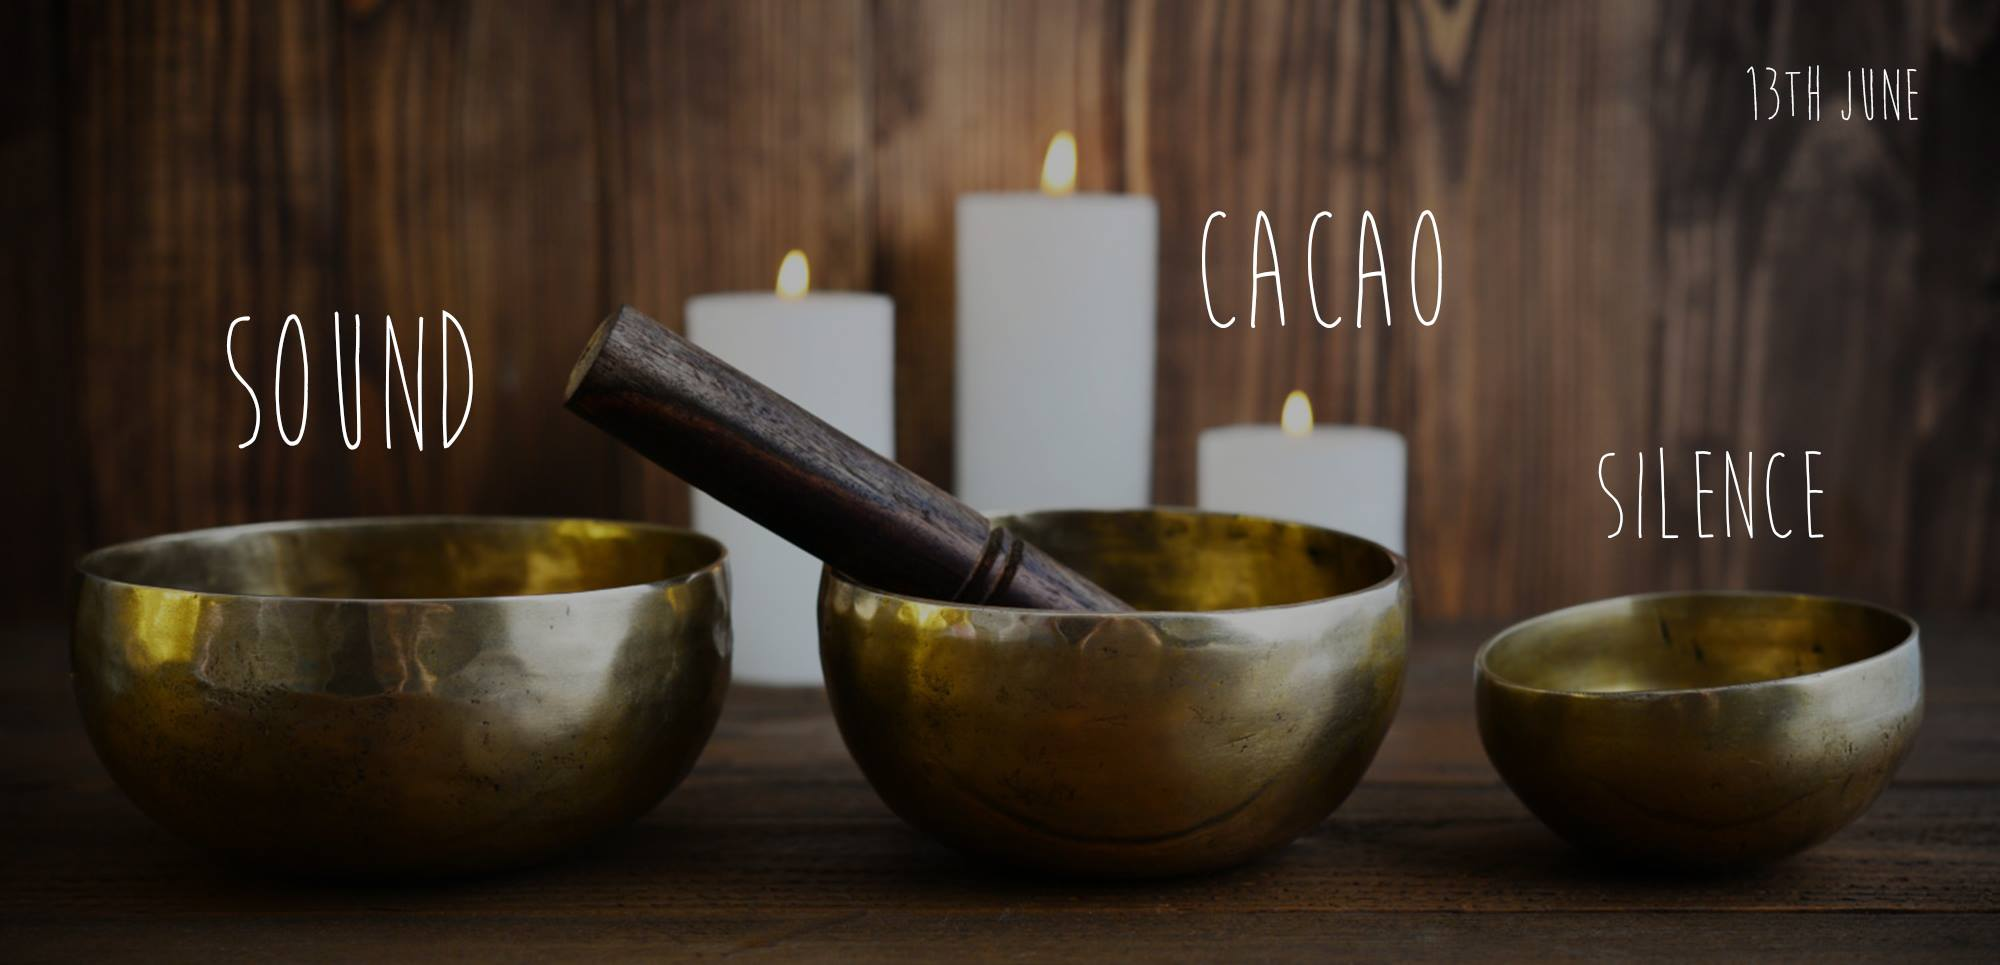 Dear Familia,  On June 13th  Primal and  Coração de Cacau invite you for an intimate midweek sound. cacao. and silence. gathering to practice deep inner listening at Wozen Studio. We will be bathed in sound waves and take our time as we move and dance our bodies and our instruments from a place of empty inner space.  In the world we live in today, silence is threatened by incessant talk and chatter which undermines music but also leads us to a state of confusion as we detach from what is really our own souls sound and rhythm. It is through this deep inner listening that we are able to express and create from the inside out, and truly hear and share a piece of what our soul whispers within. This is because in silence our experience of the world recedes and our feeling of isolation and our interior being increases.  Sound without silence would be noise, and silence without sound would leave us in an empty voice. Without the alteration between sound and music there would be no rhythm. Dance is a prayer with intention, and we invite you to join us as we are blessed with beautiful cacao heart opening medicinal from the Trinidadian jungle to bring us energy of abundance and plenitude and support us in co-creating a free and aware space to experience our inner natural love, meditate to the sound of our inner body whispers and be conducted into a state of loving transe.  ♥ -- ♥ --♥ -- ♥ --♥ -- ♥ --♥ -- ♥ --♥ -- ♥ --♥ -- ♥ --  How?  18.30pm Arrive to ground in, clear our energy fields from the work week and sit in silence as we feel into the energies present within our bodies.  19.00pm  Silent and sacred cacao ritual with Momo. Sat in a circle we will collectively hold space for the medicinal plant and our own inner being with our full presence. Filipe will then bathe us in a gong bath as the medicine travels through our bodies.  19.45pm Anna Maria will then take us through a movement journey awakening parts of our body to the dance of our inner silence.  20.00pm  Miguel and